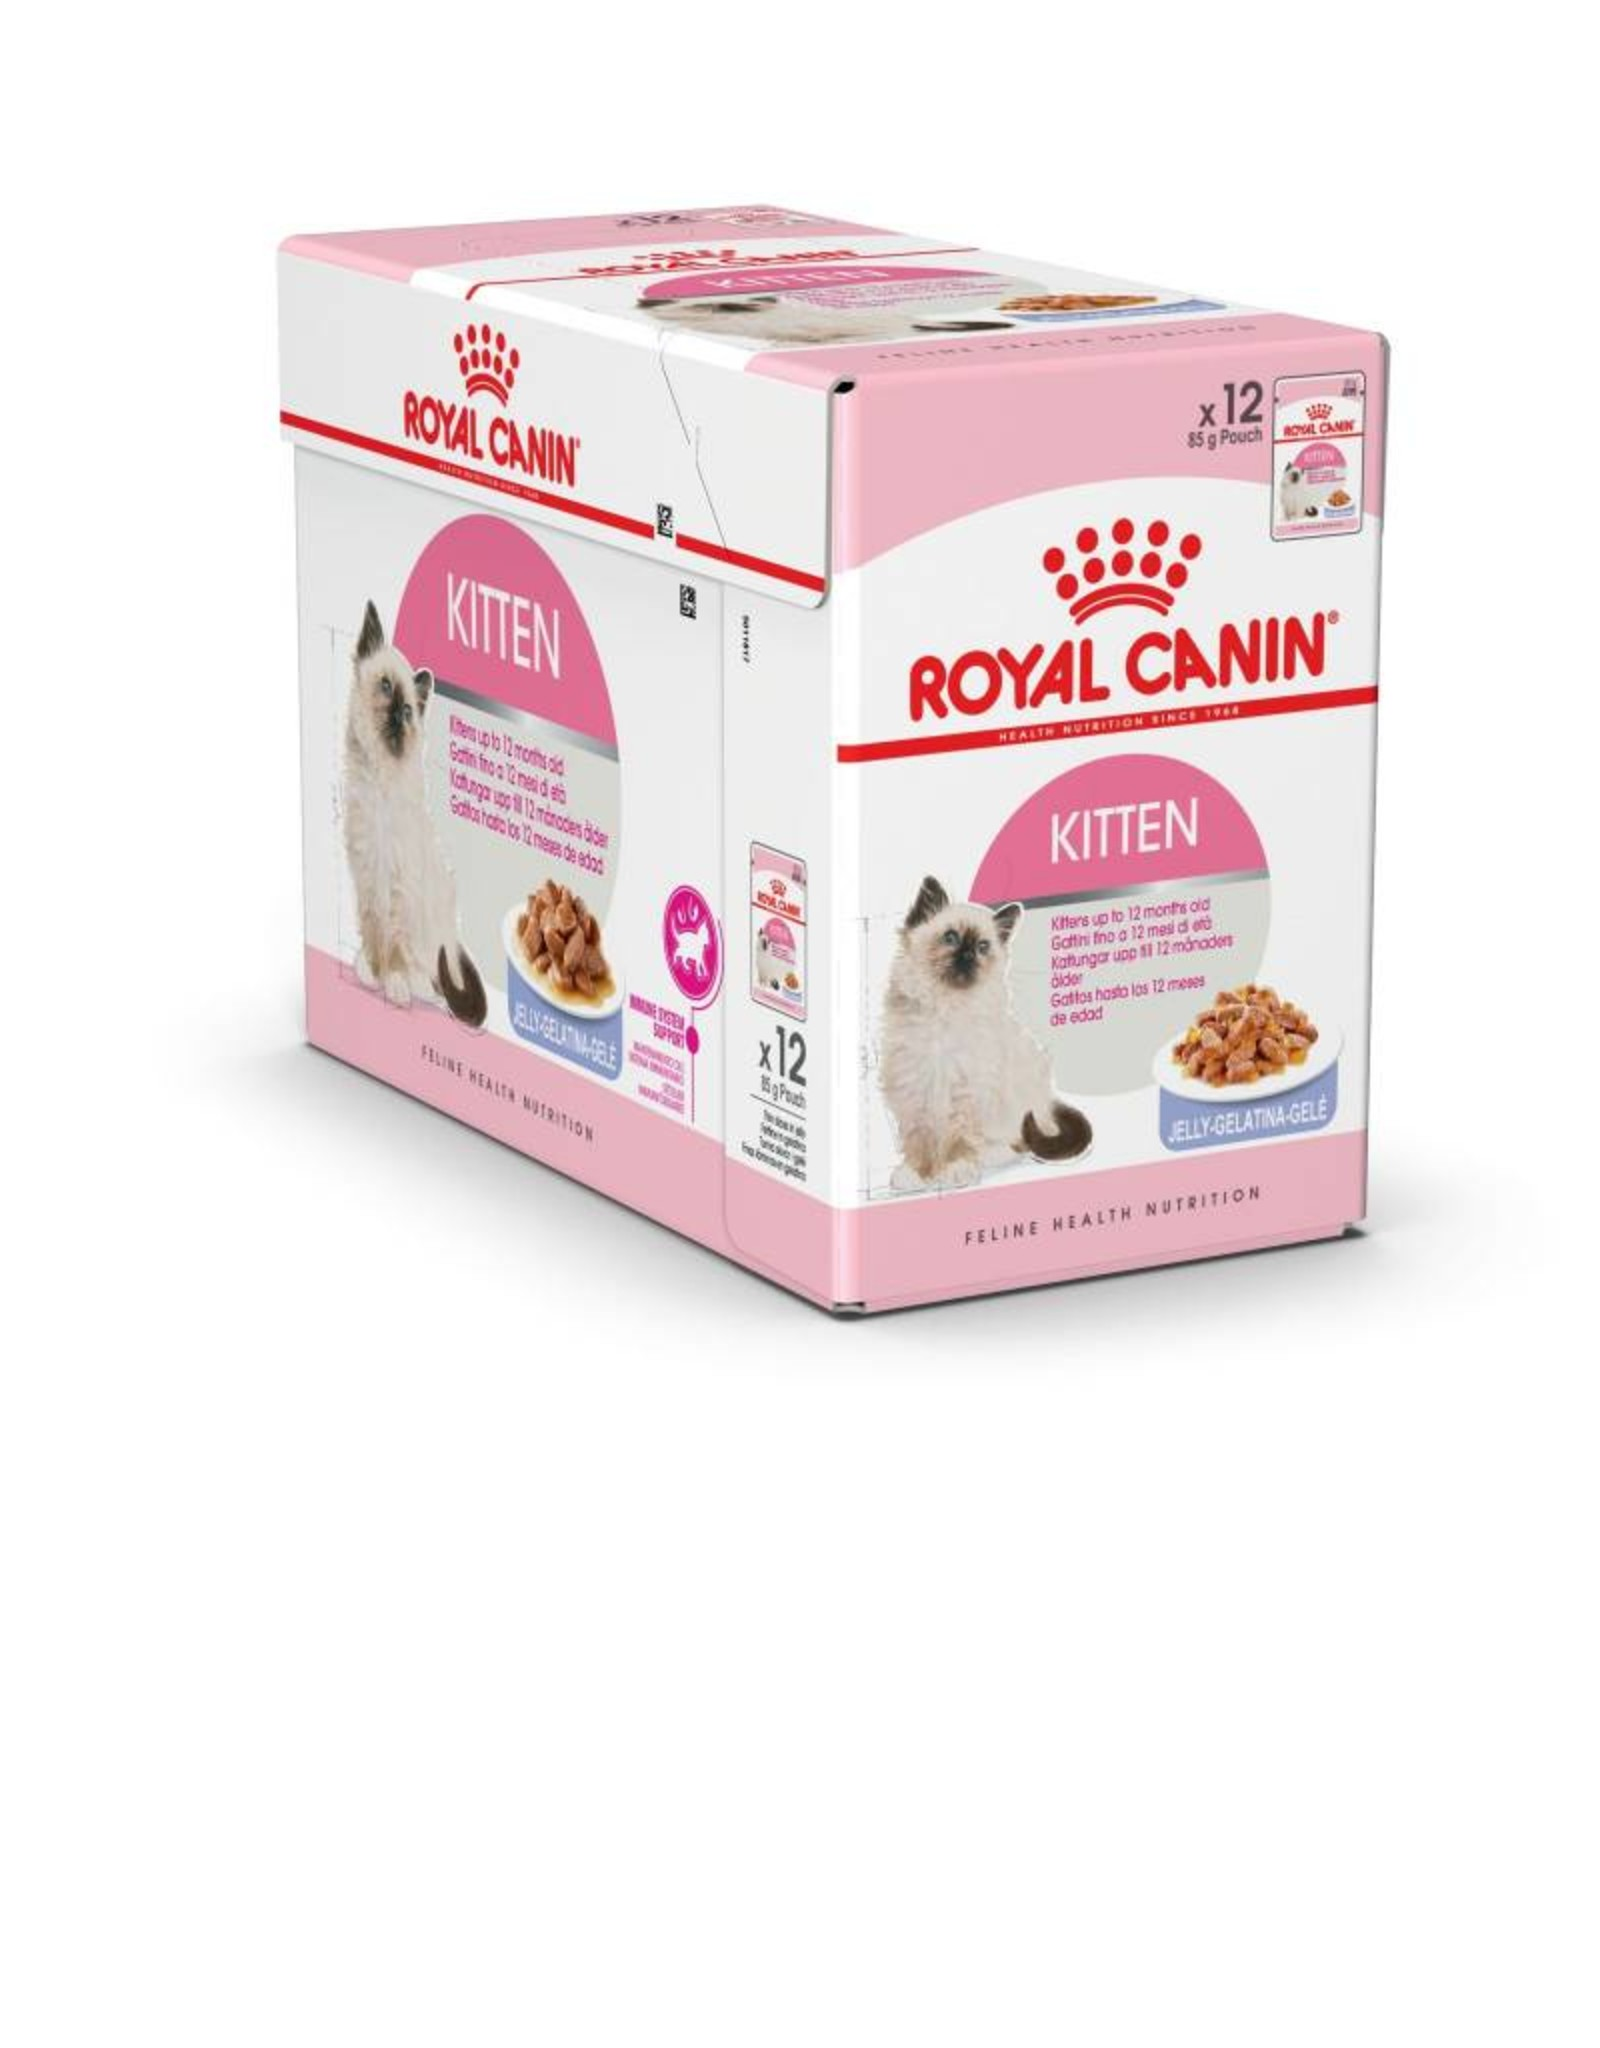 Royal Canin Kitten Wet Food Pouch with Jelly, 85g, box of 12